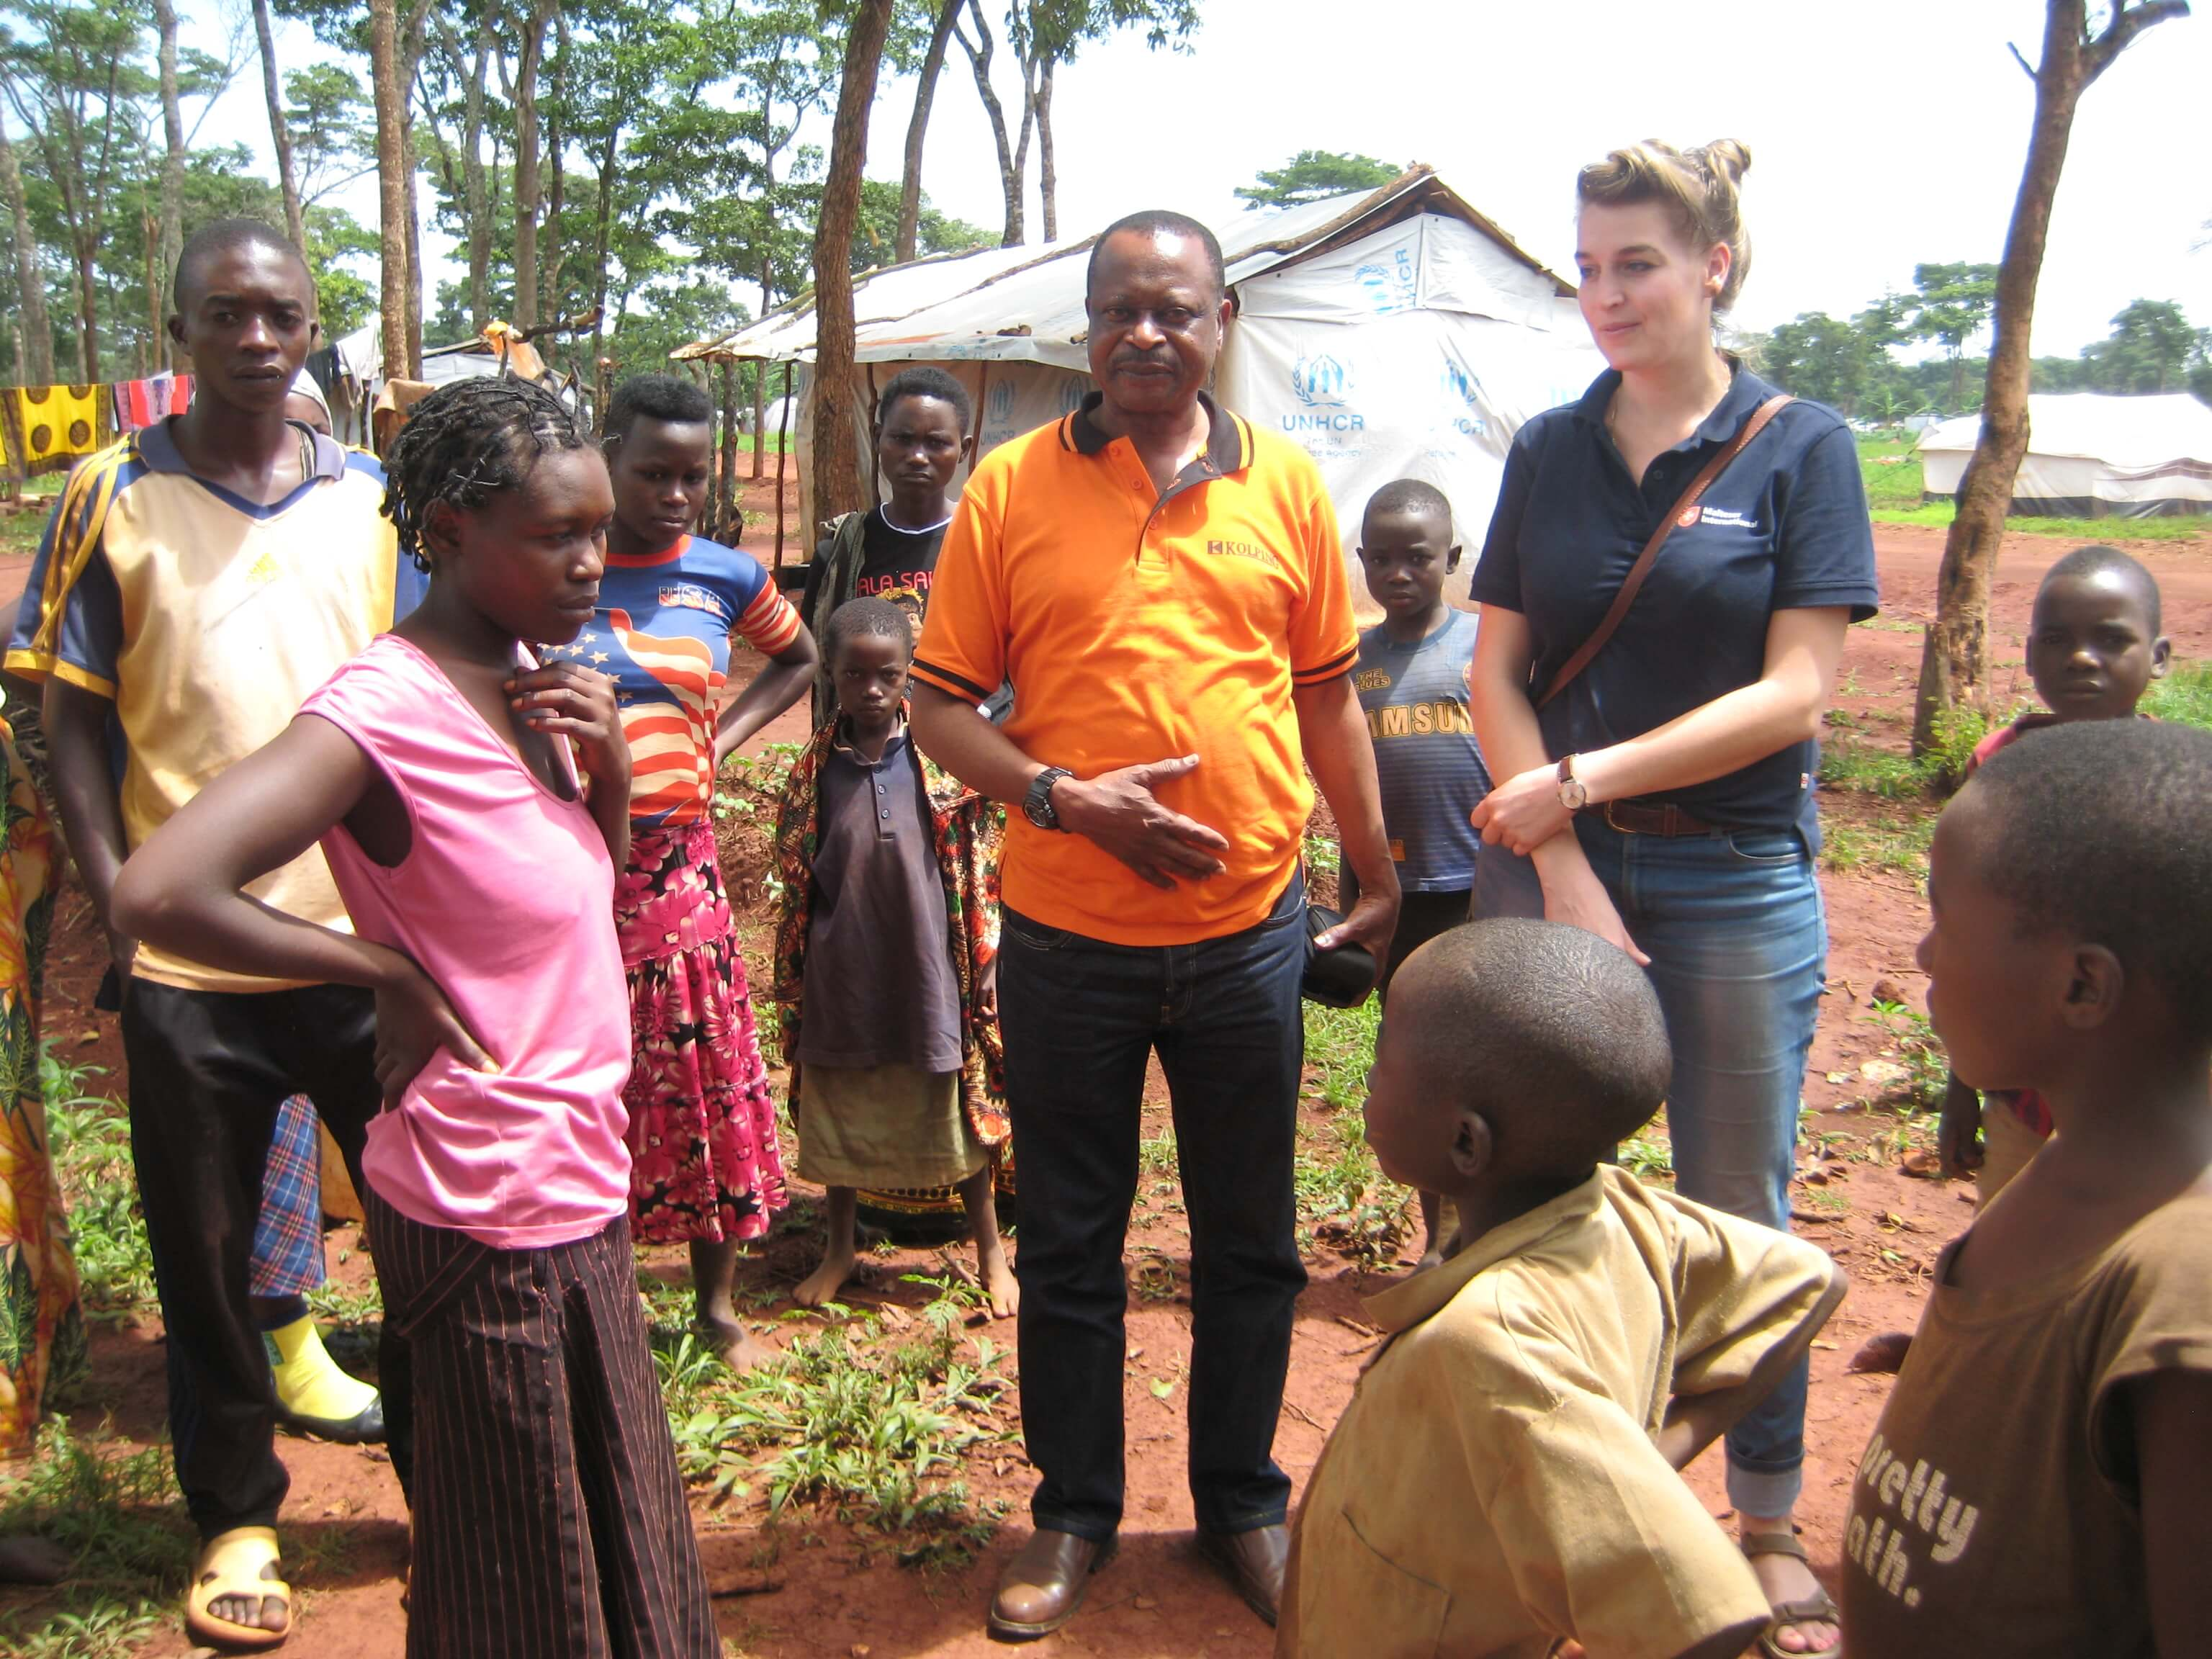 Iovanna Lesniewski, Malteser International project manager, in conversation with refugees from Burundi. Photo: Malteser International · Download